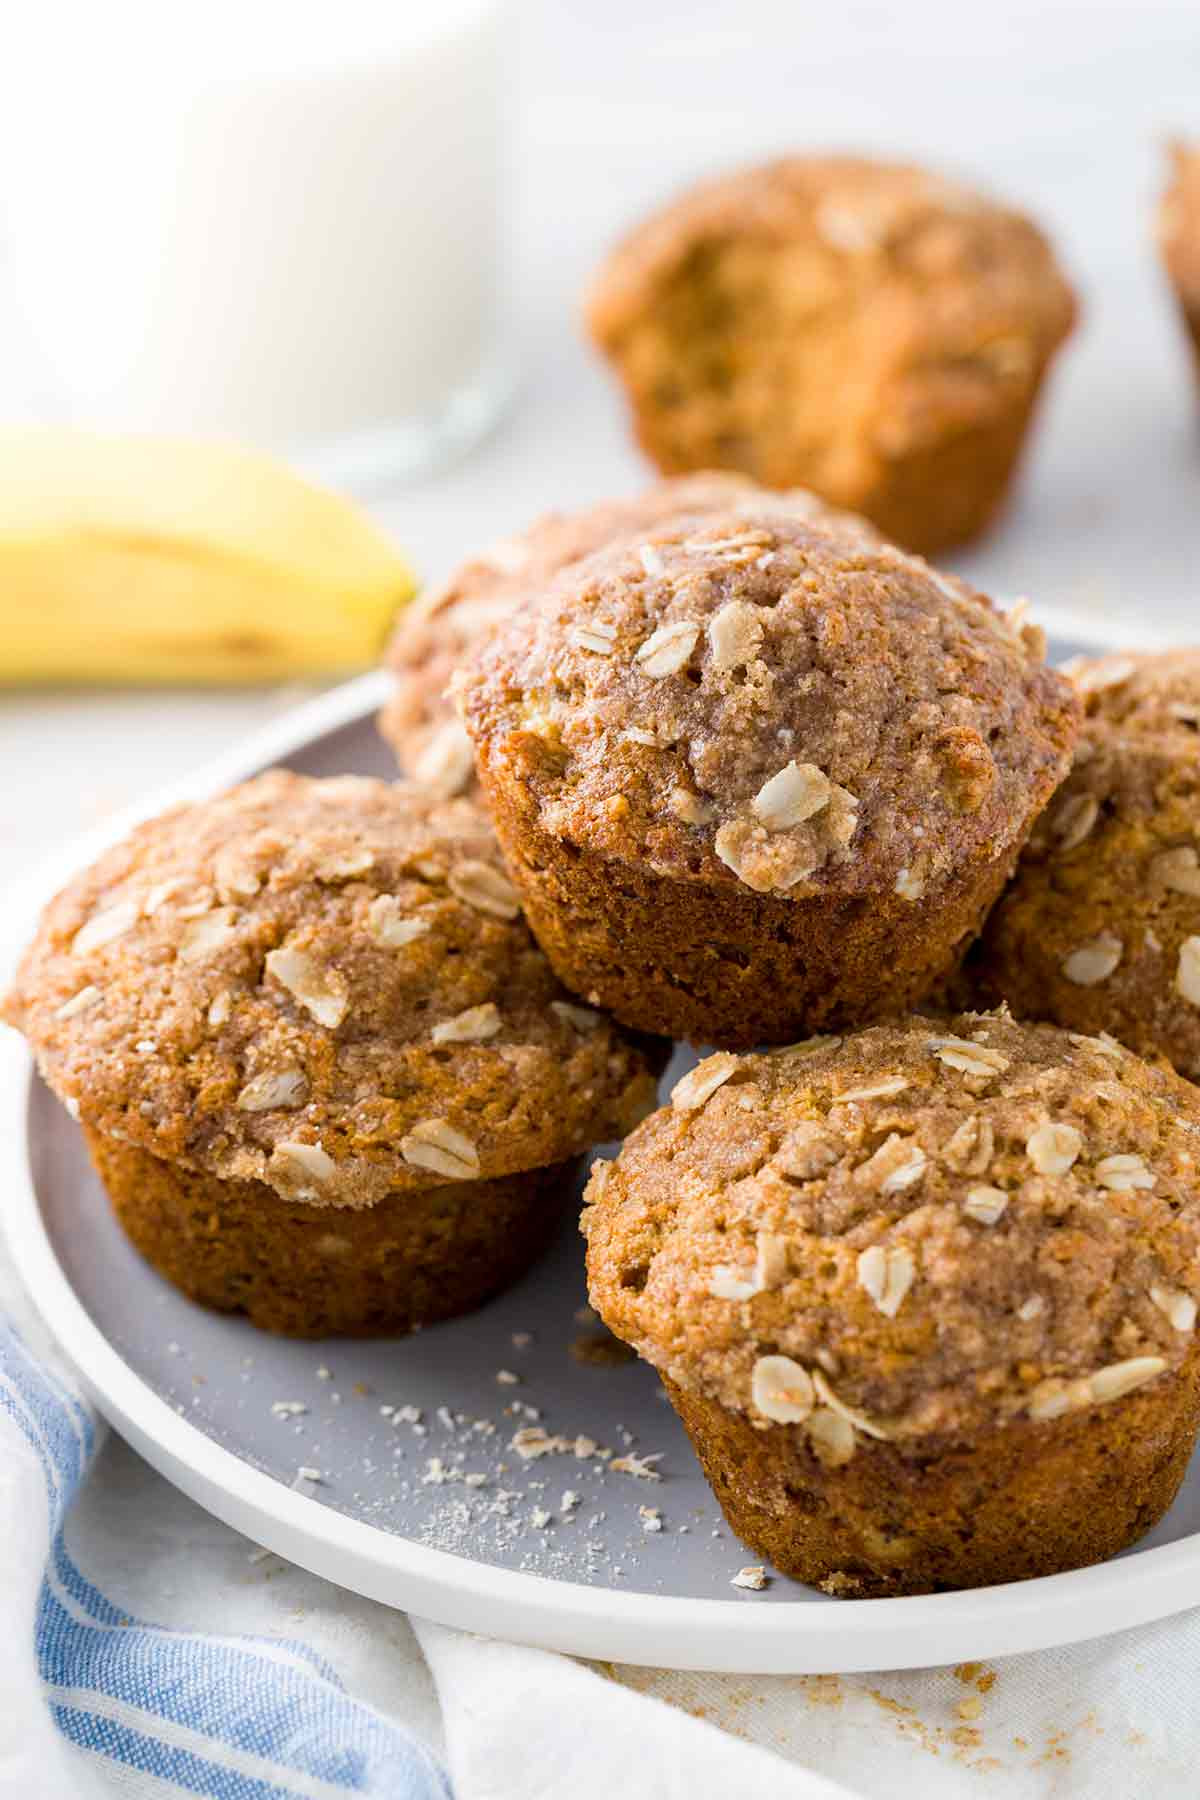 Healthy Banana Recipes  Healthy Banana Muffins with Old Fashioned Oats